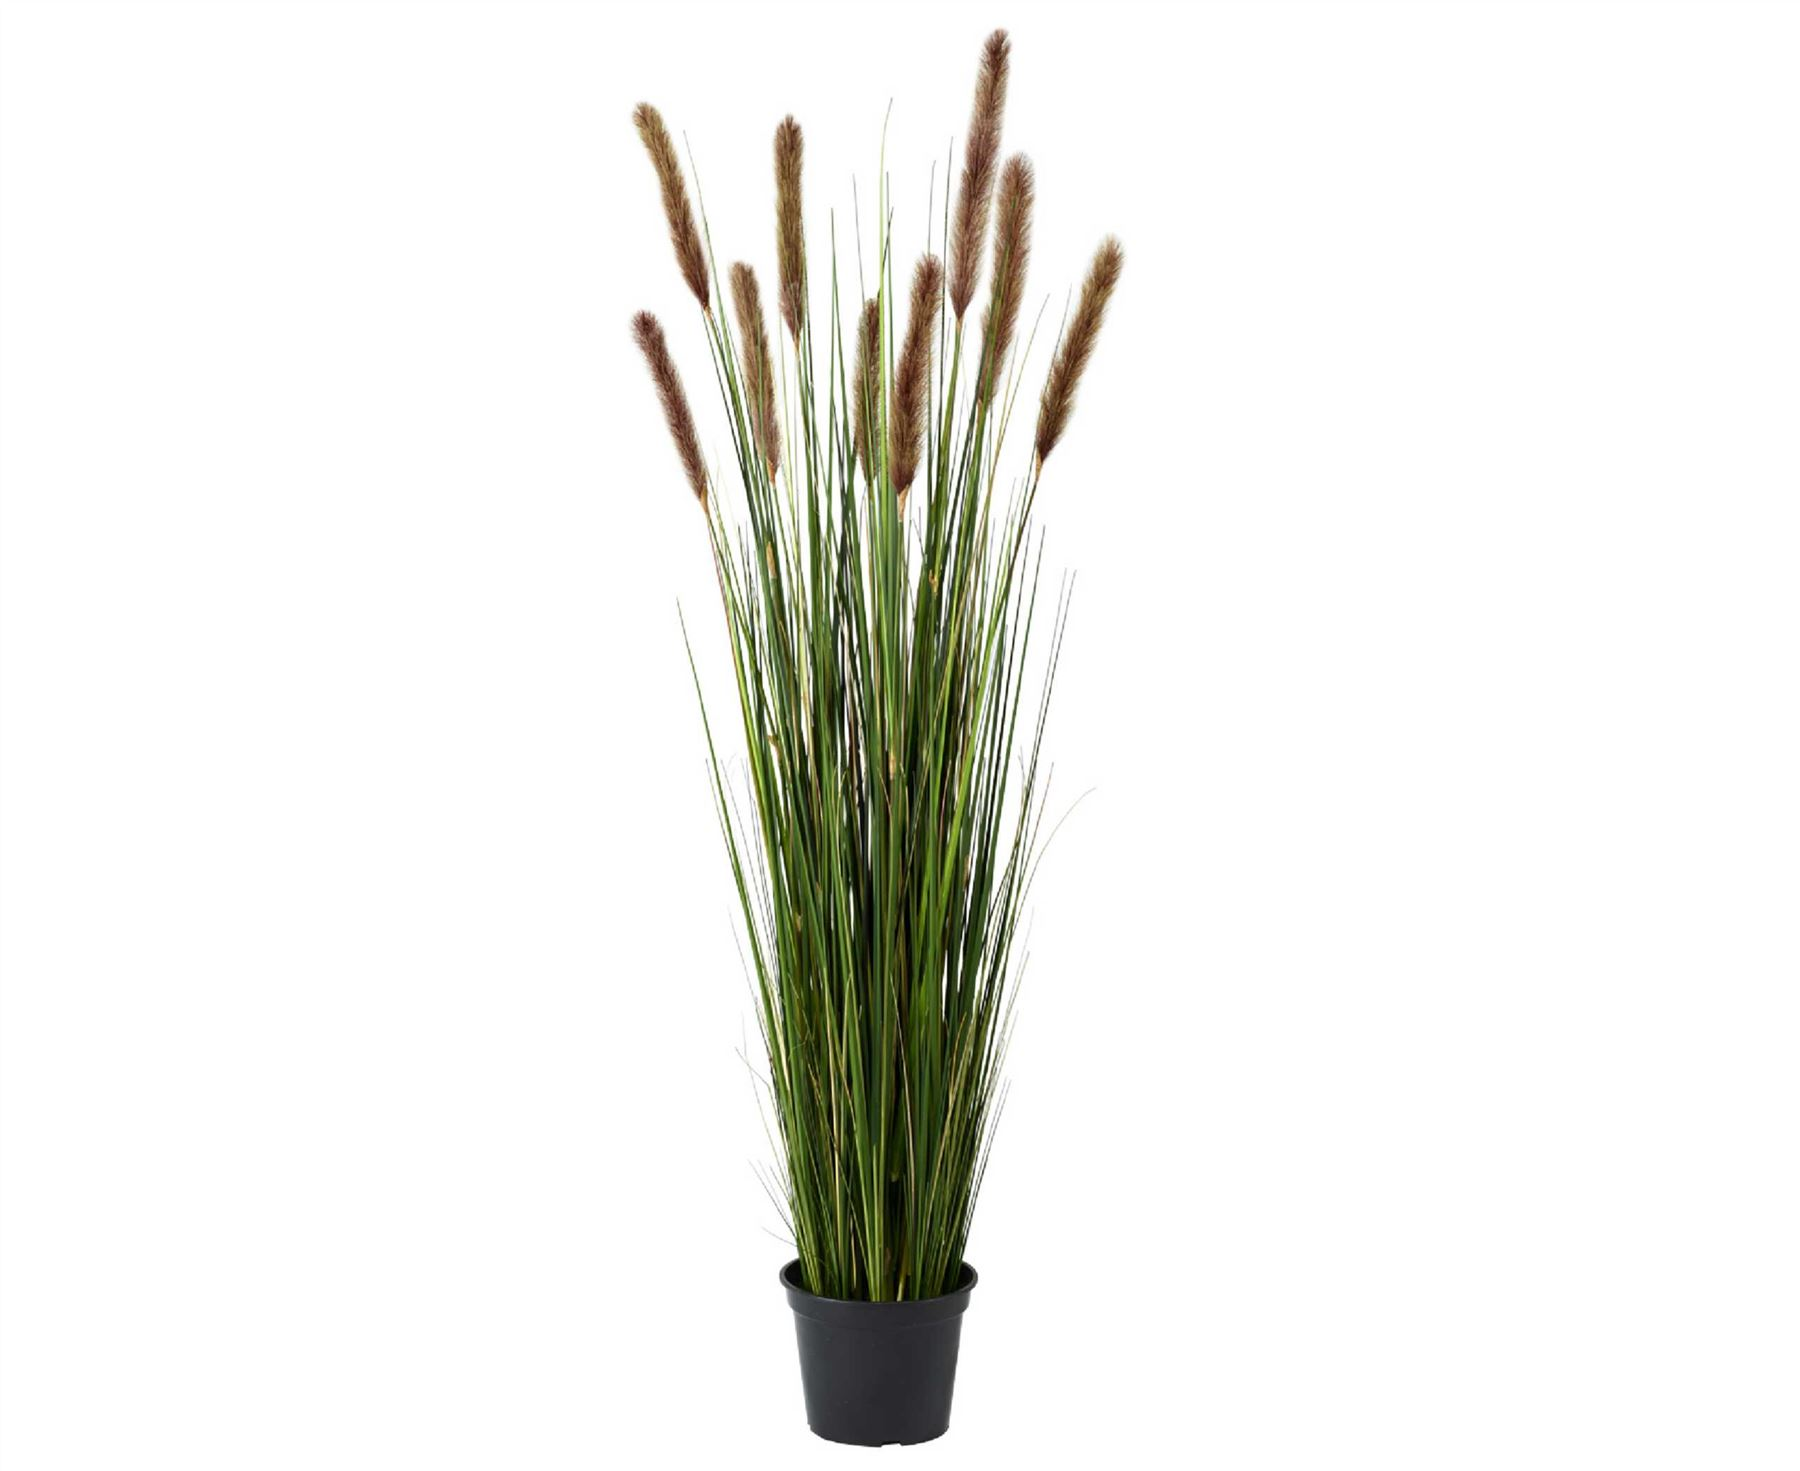 Bloom 4ft potted grass tall 120cm artificial plant home for Tall green ornamental grass